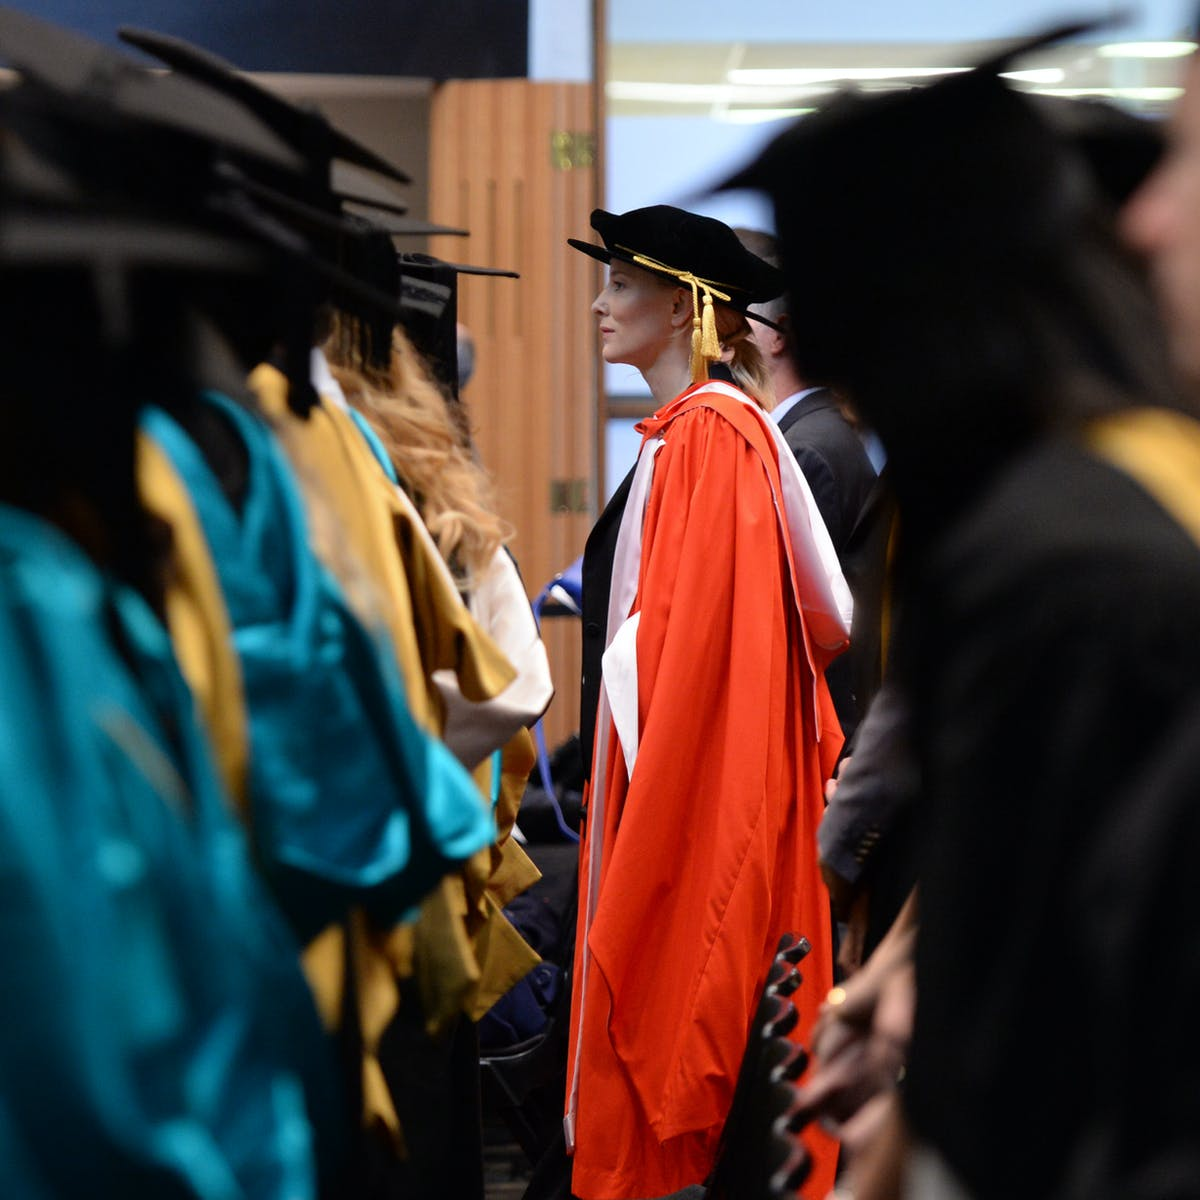 Just graduating from university is no longer enough to get a job